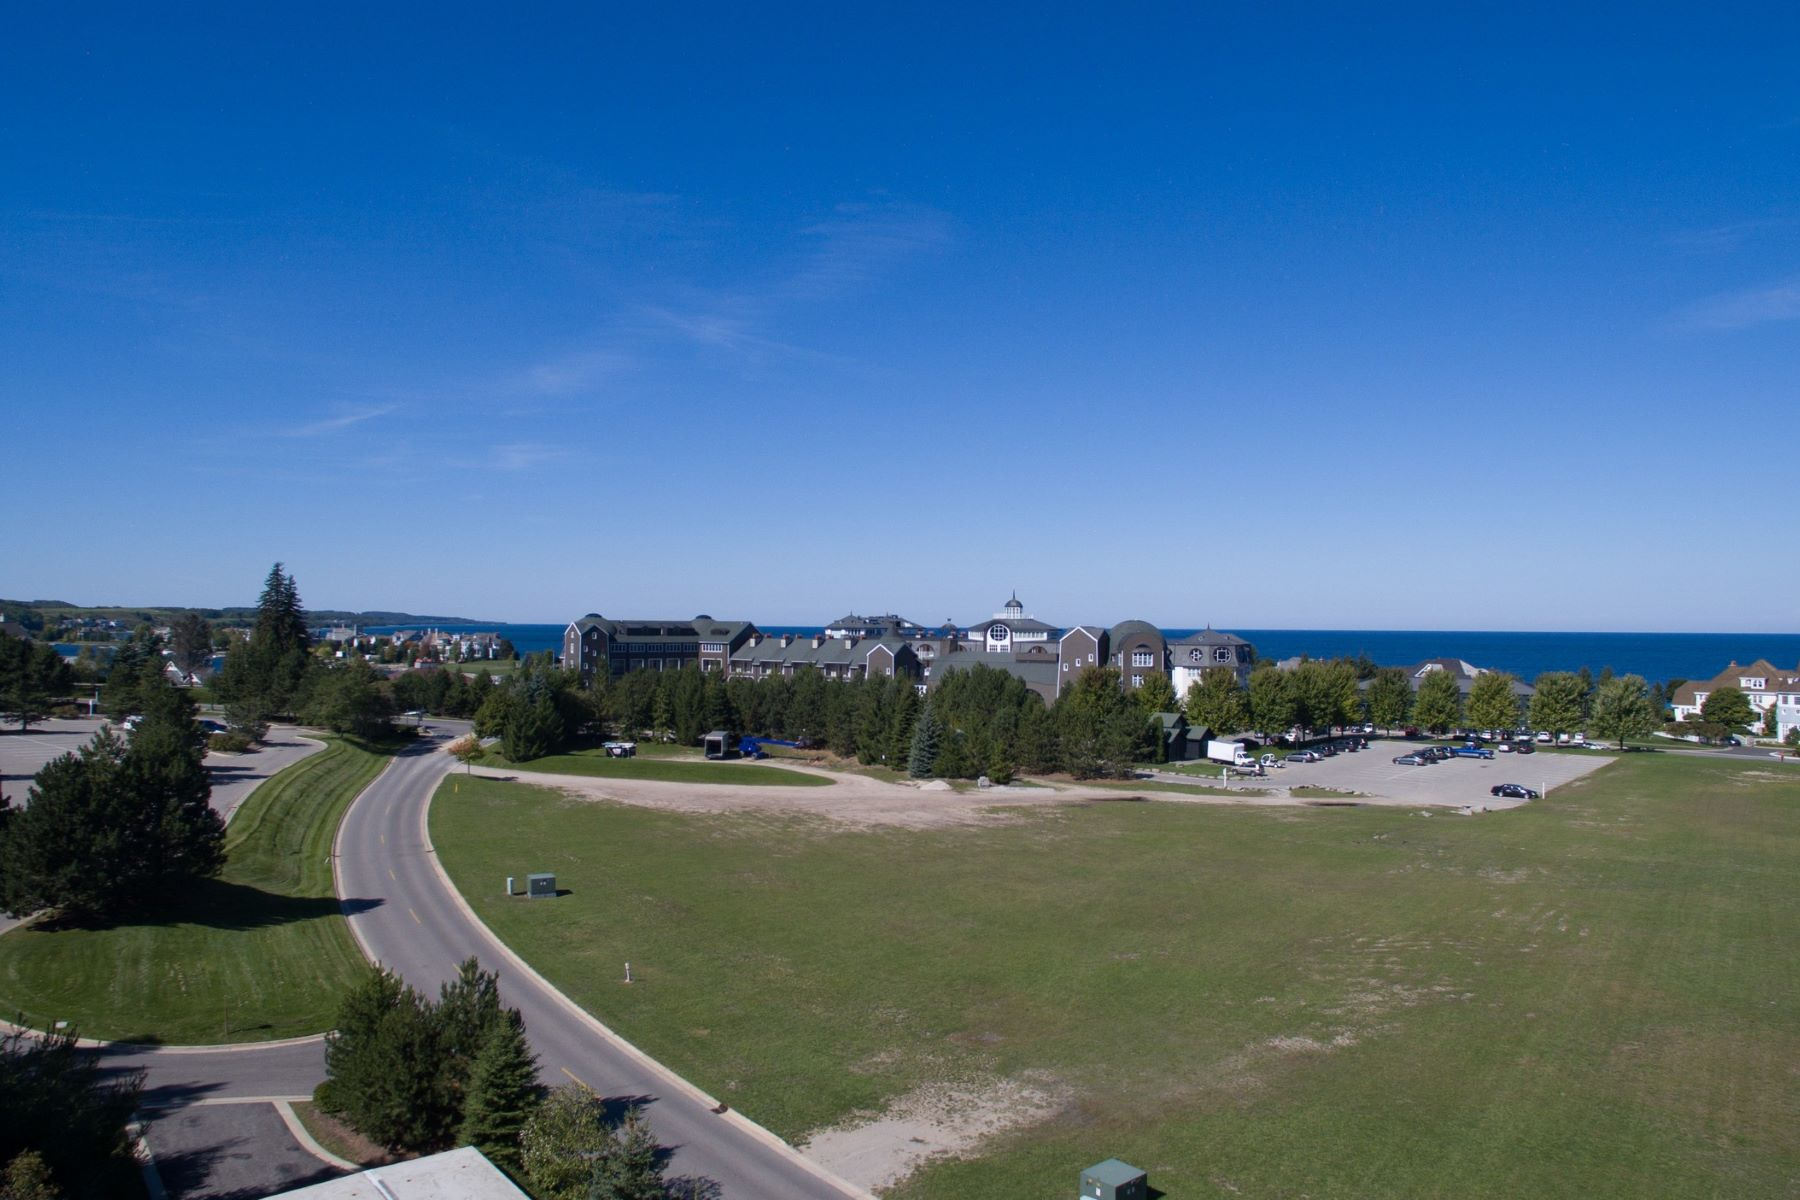 Land for Sale at Unit 1, The Ridge TBD Cliffs Drive, Unit 1, The Ridge Bay Harbor, Michigan 49770 United States